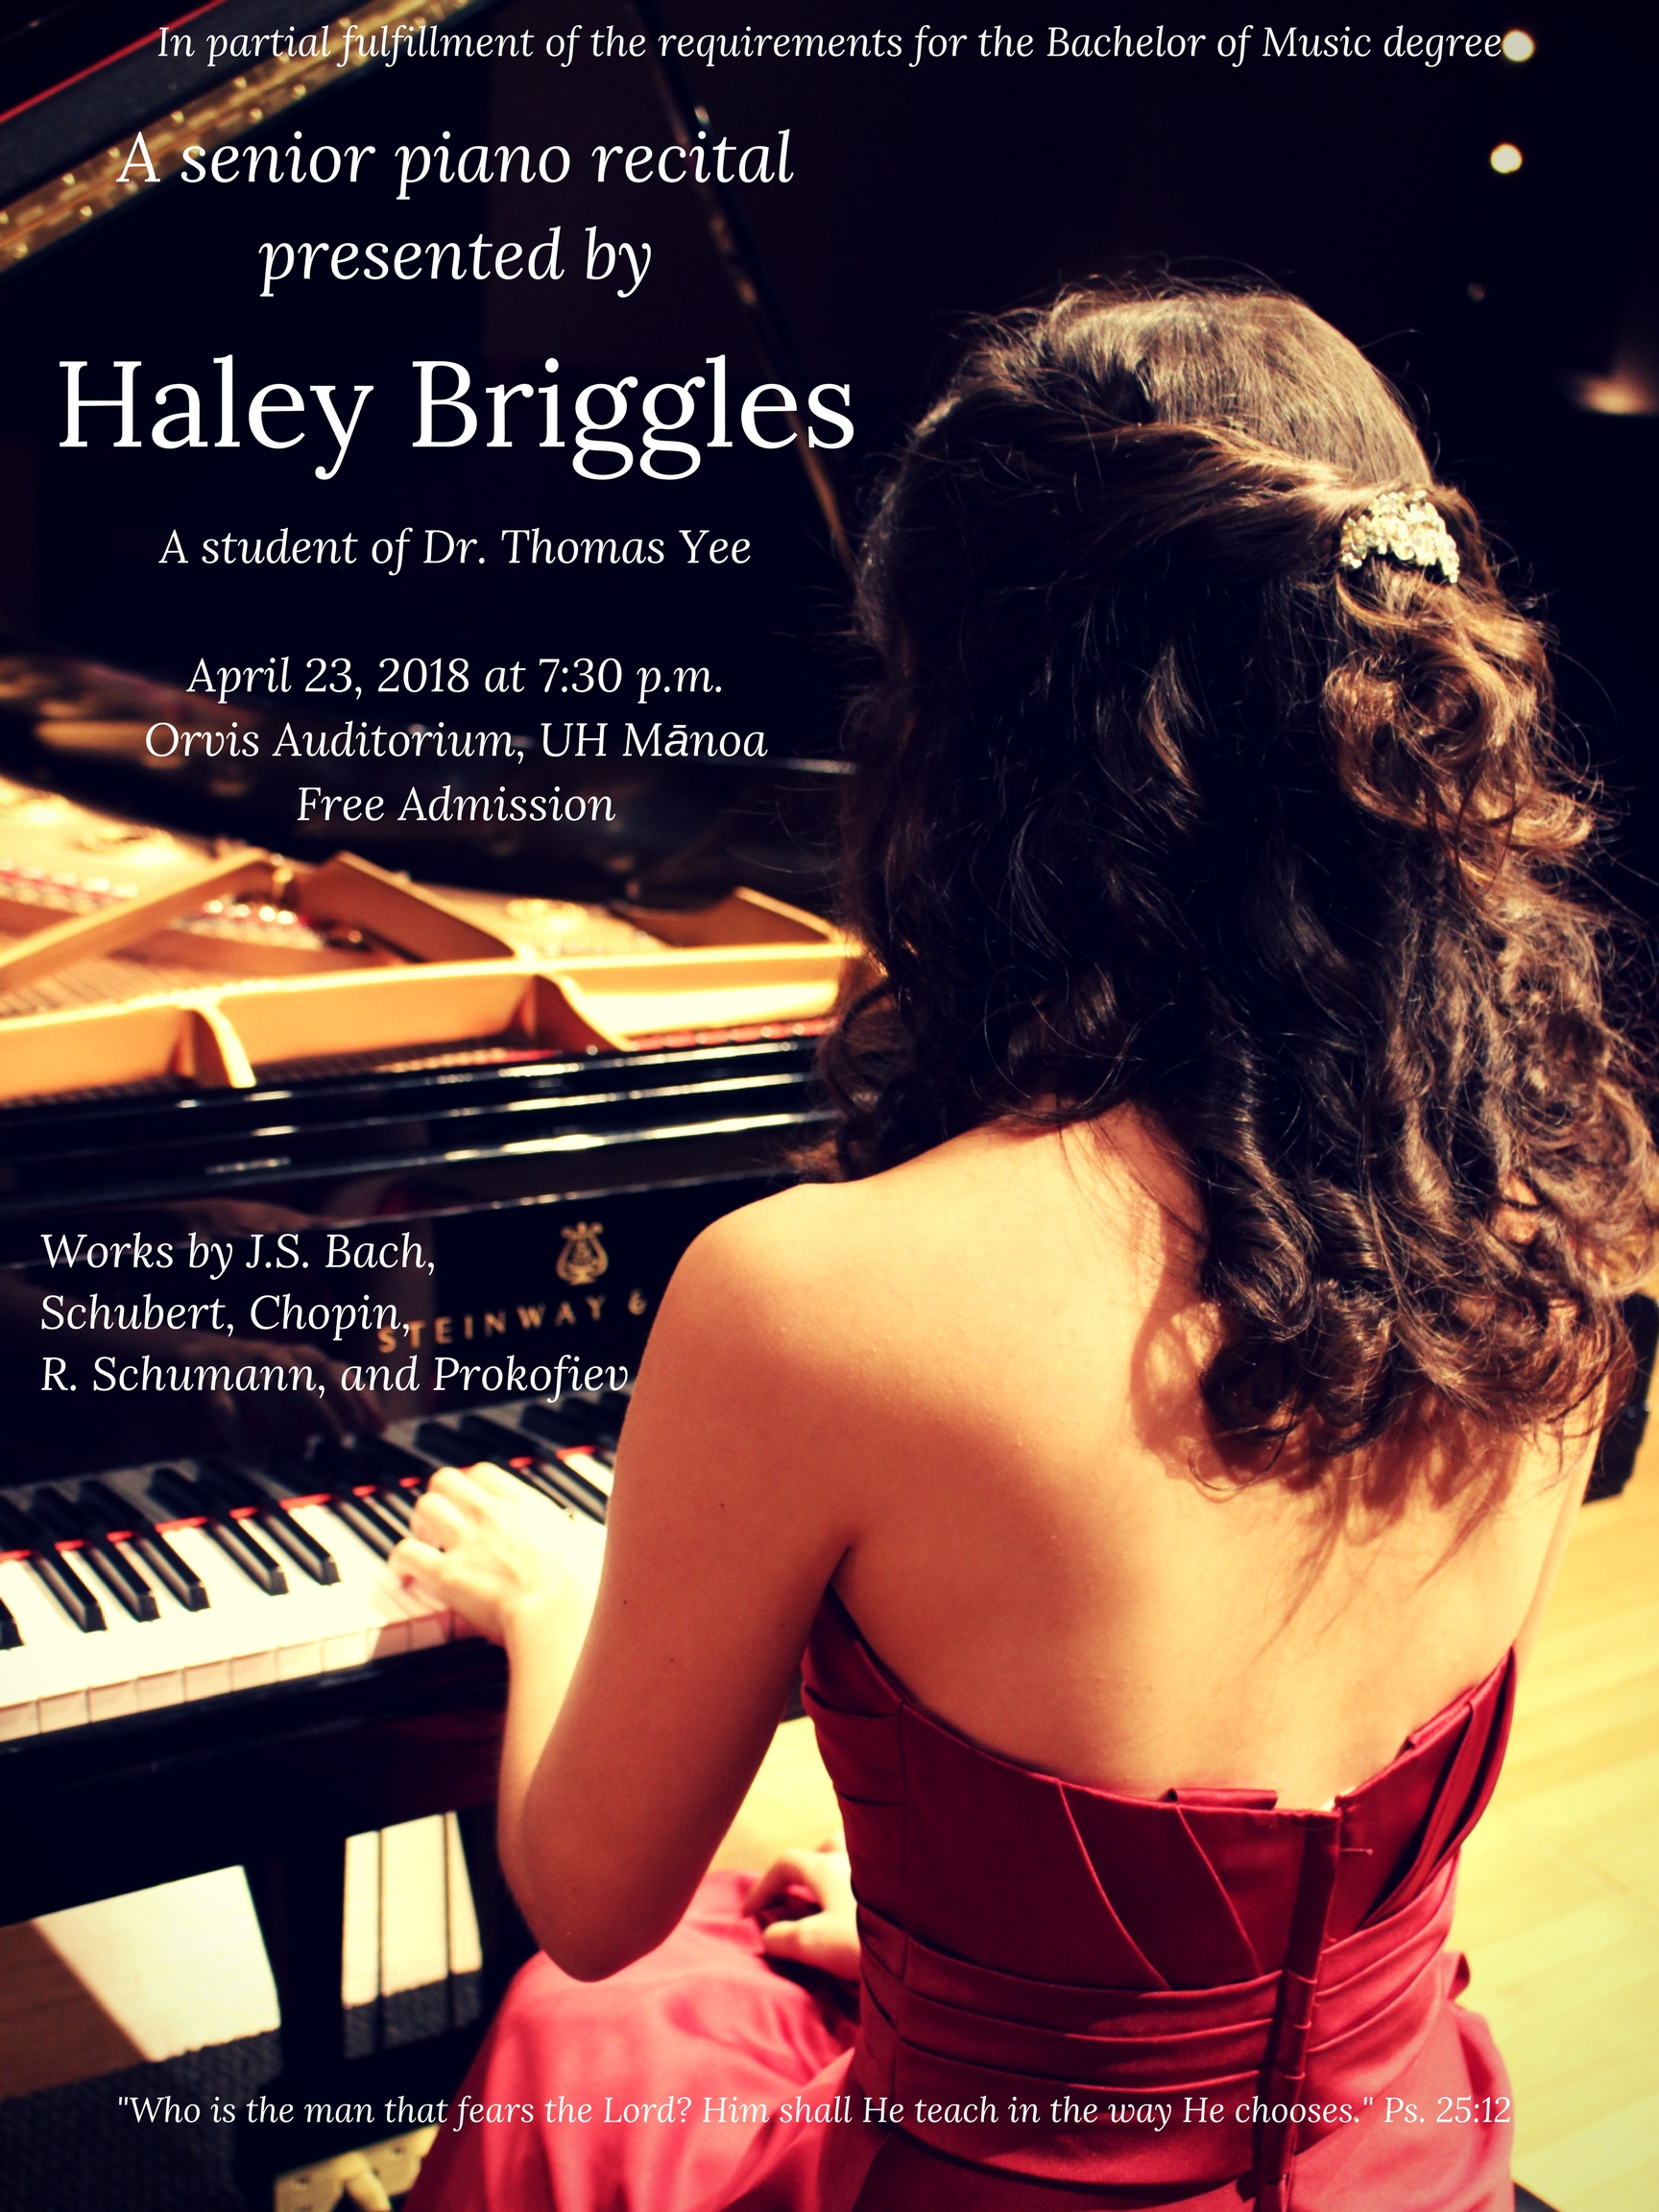 Ms. Haley's upcoming senior recital!!!